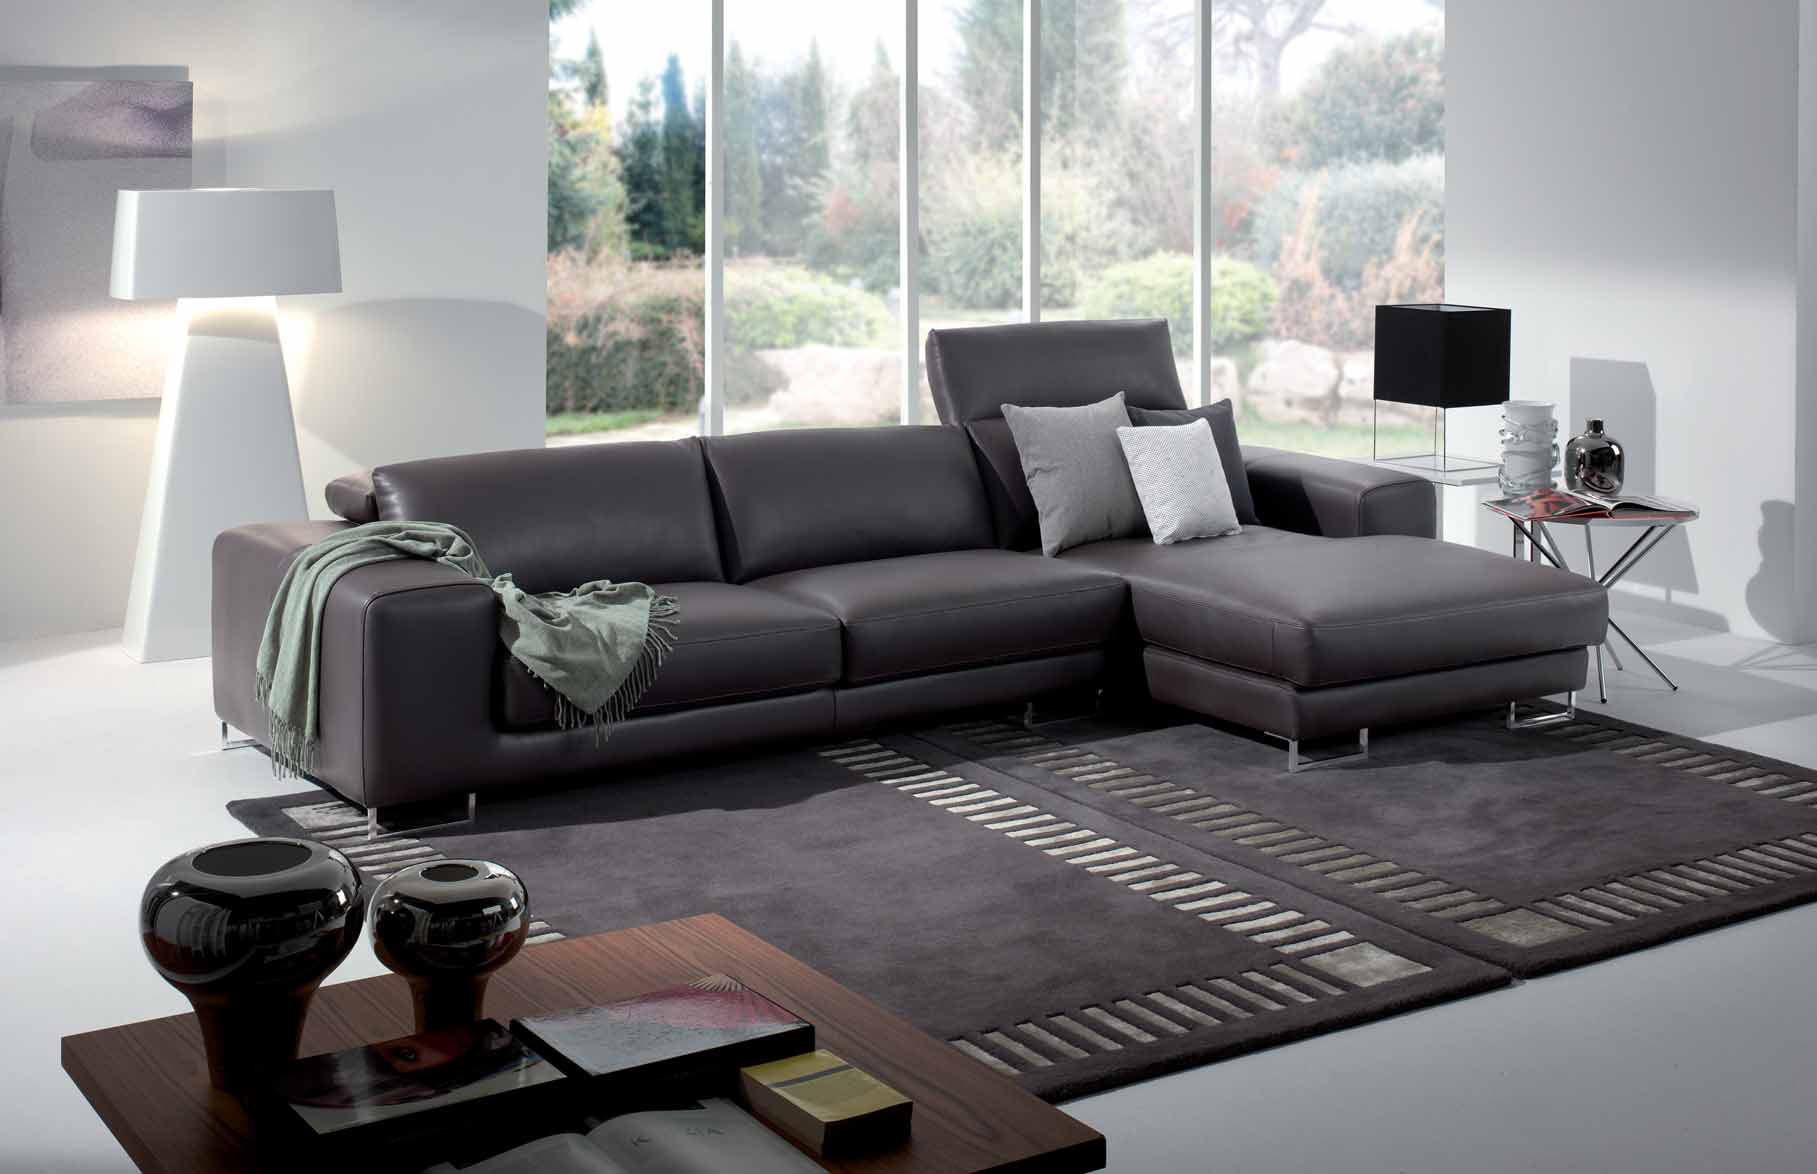 jensen lewis sleeper sofa price table with storage plans pin in italy natuzzi edition sofas editions leather